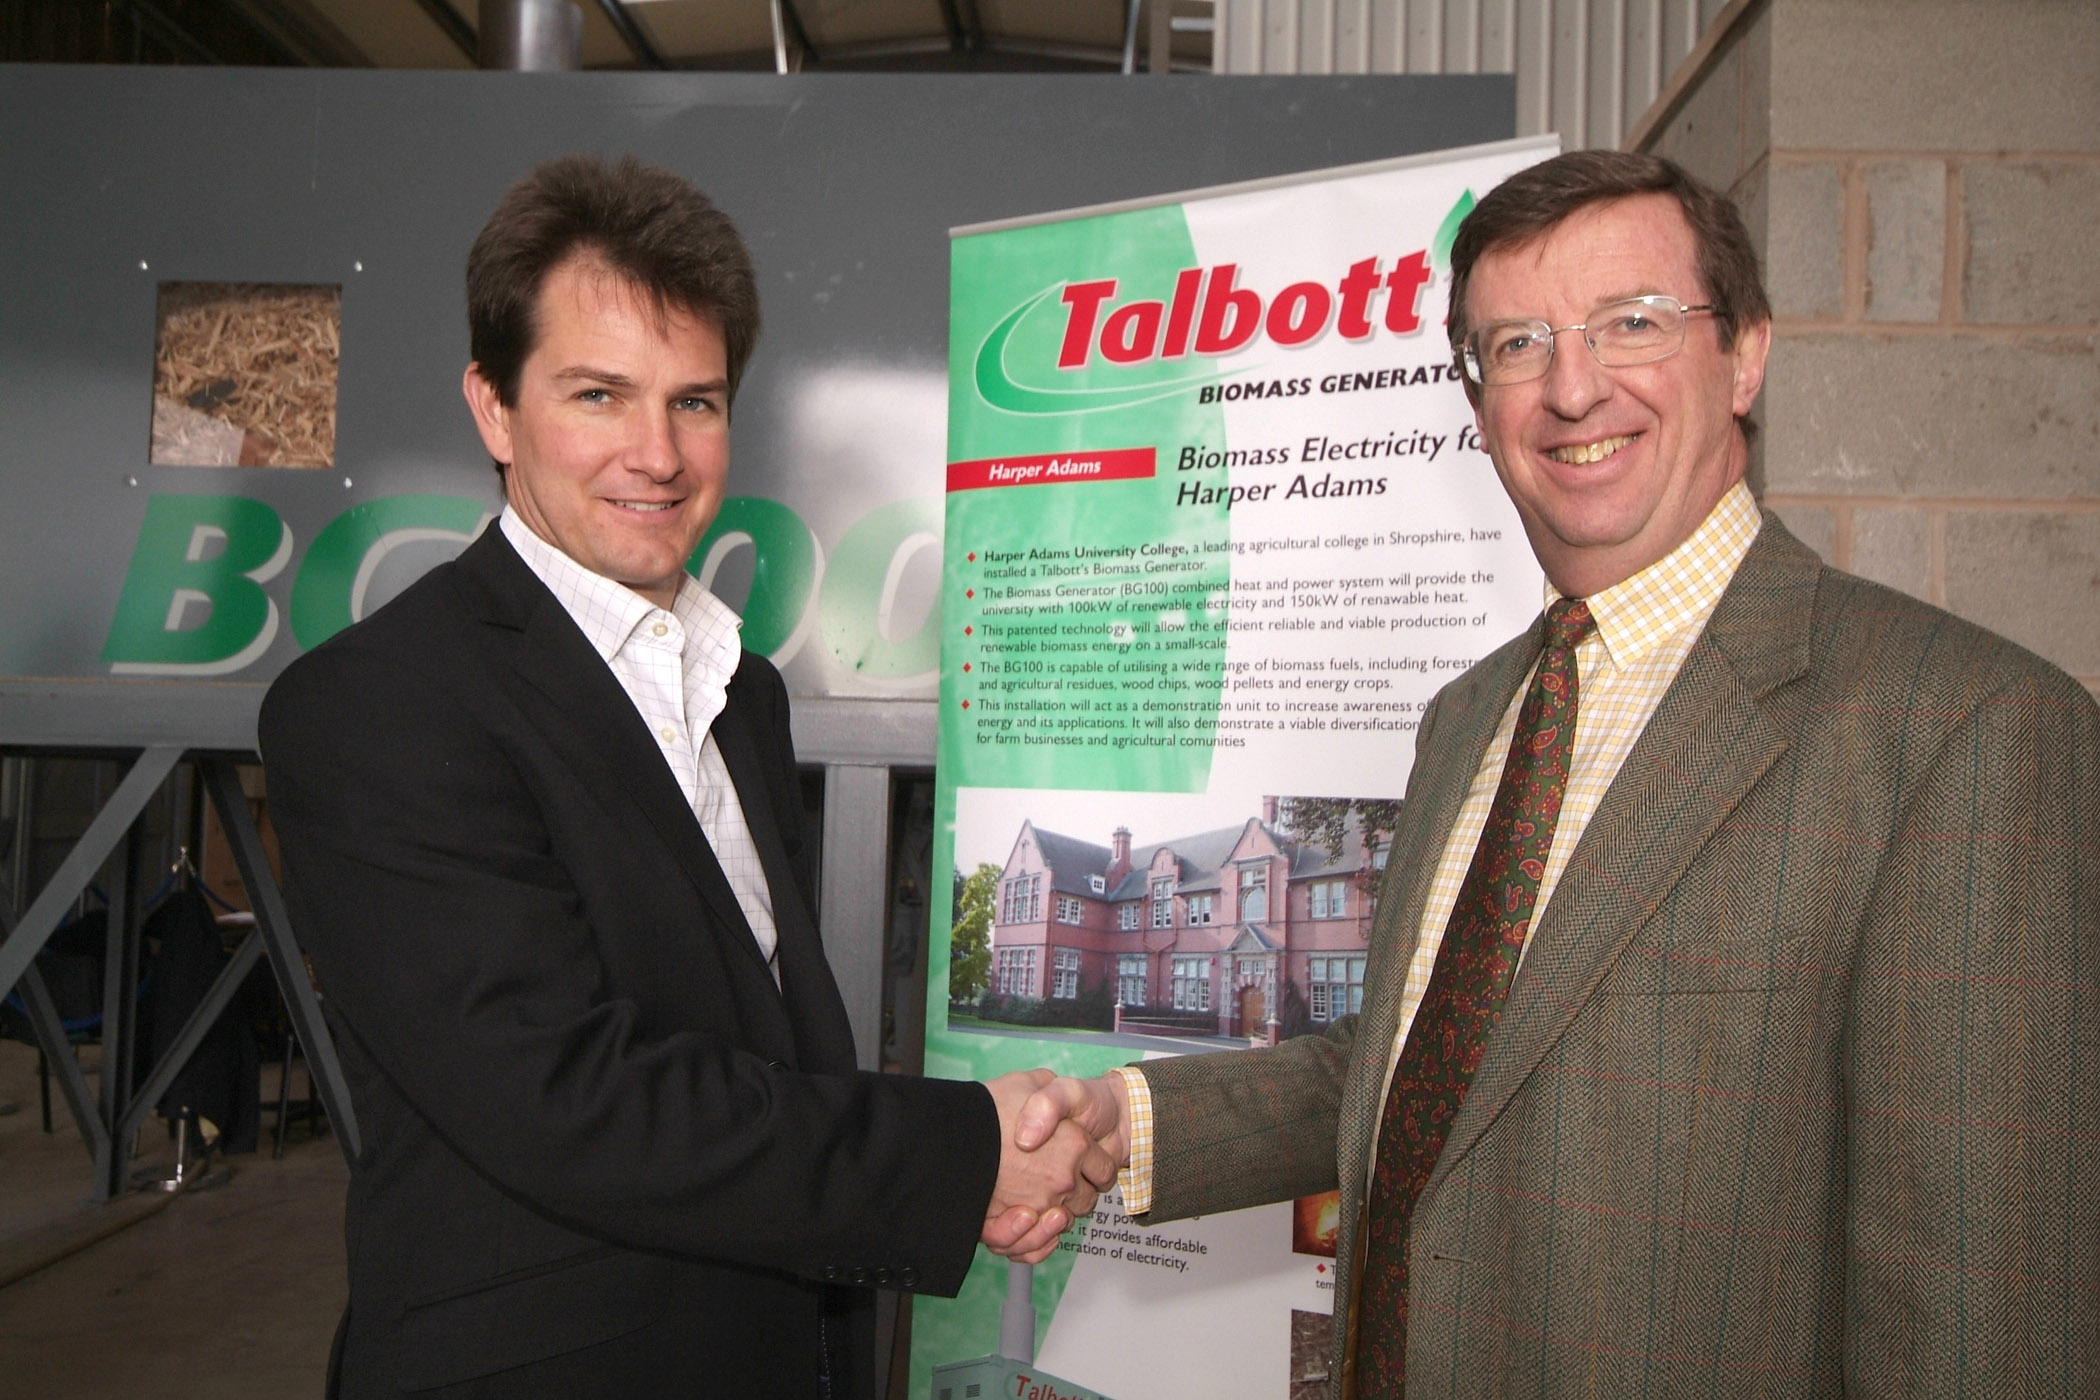 Chris Hughes, Sales Executive for Talbotts with Professor Wynne Jones, Principal at Harper Adams University College